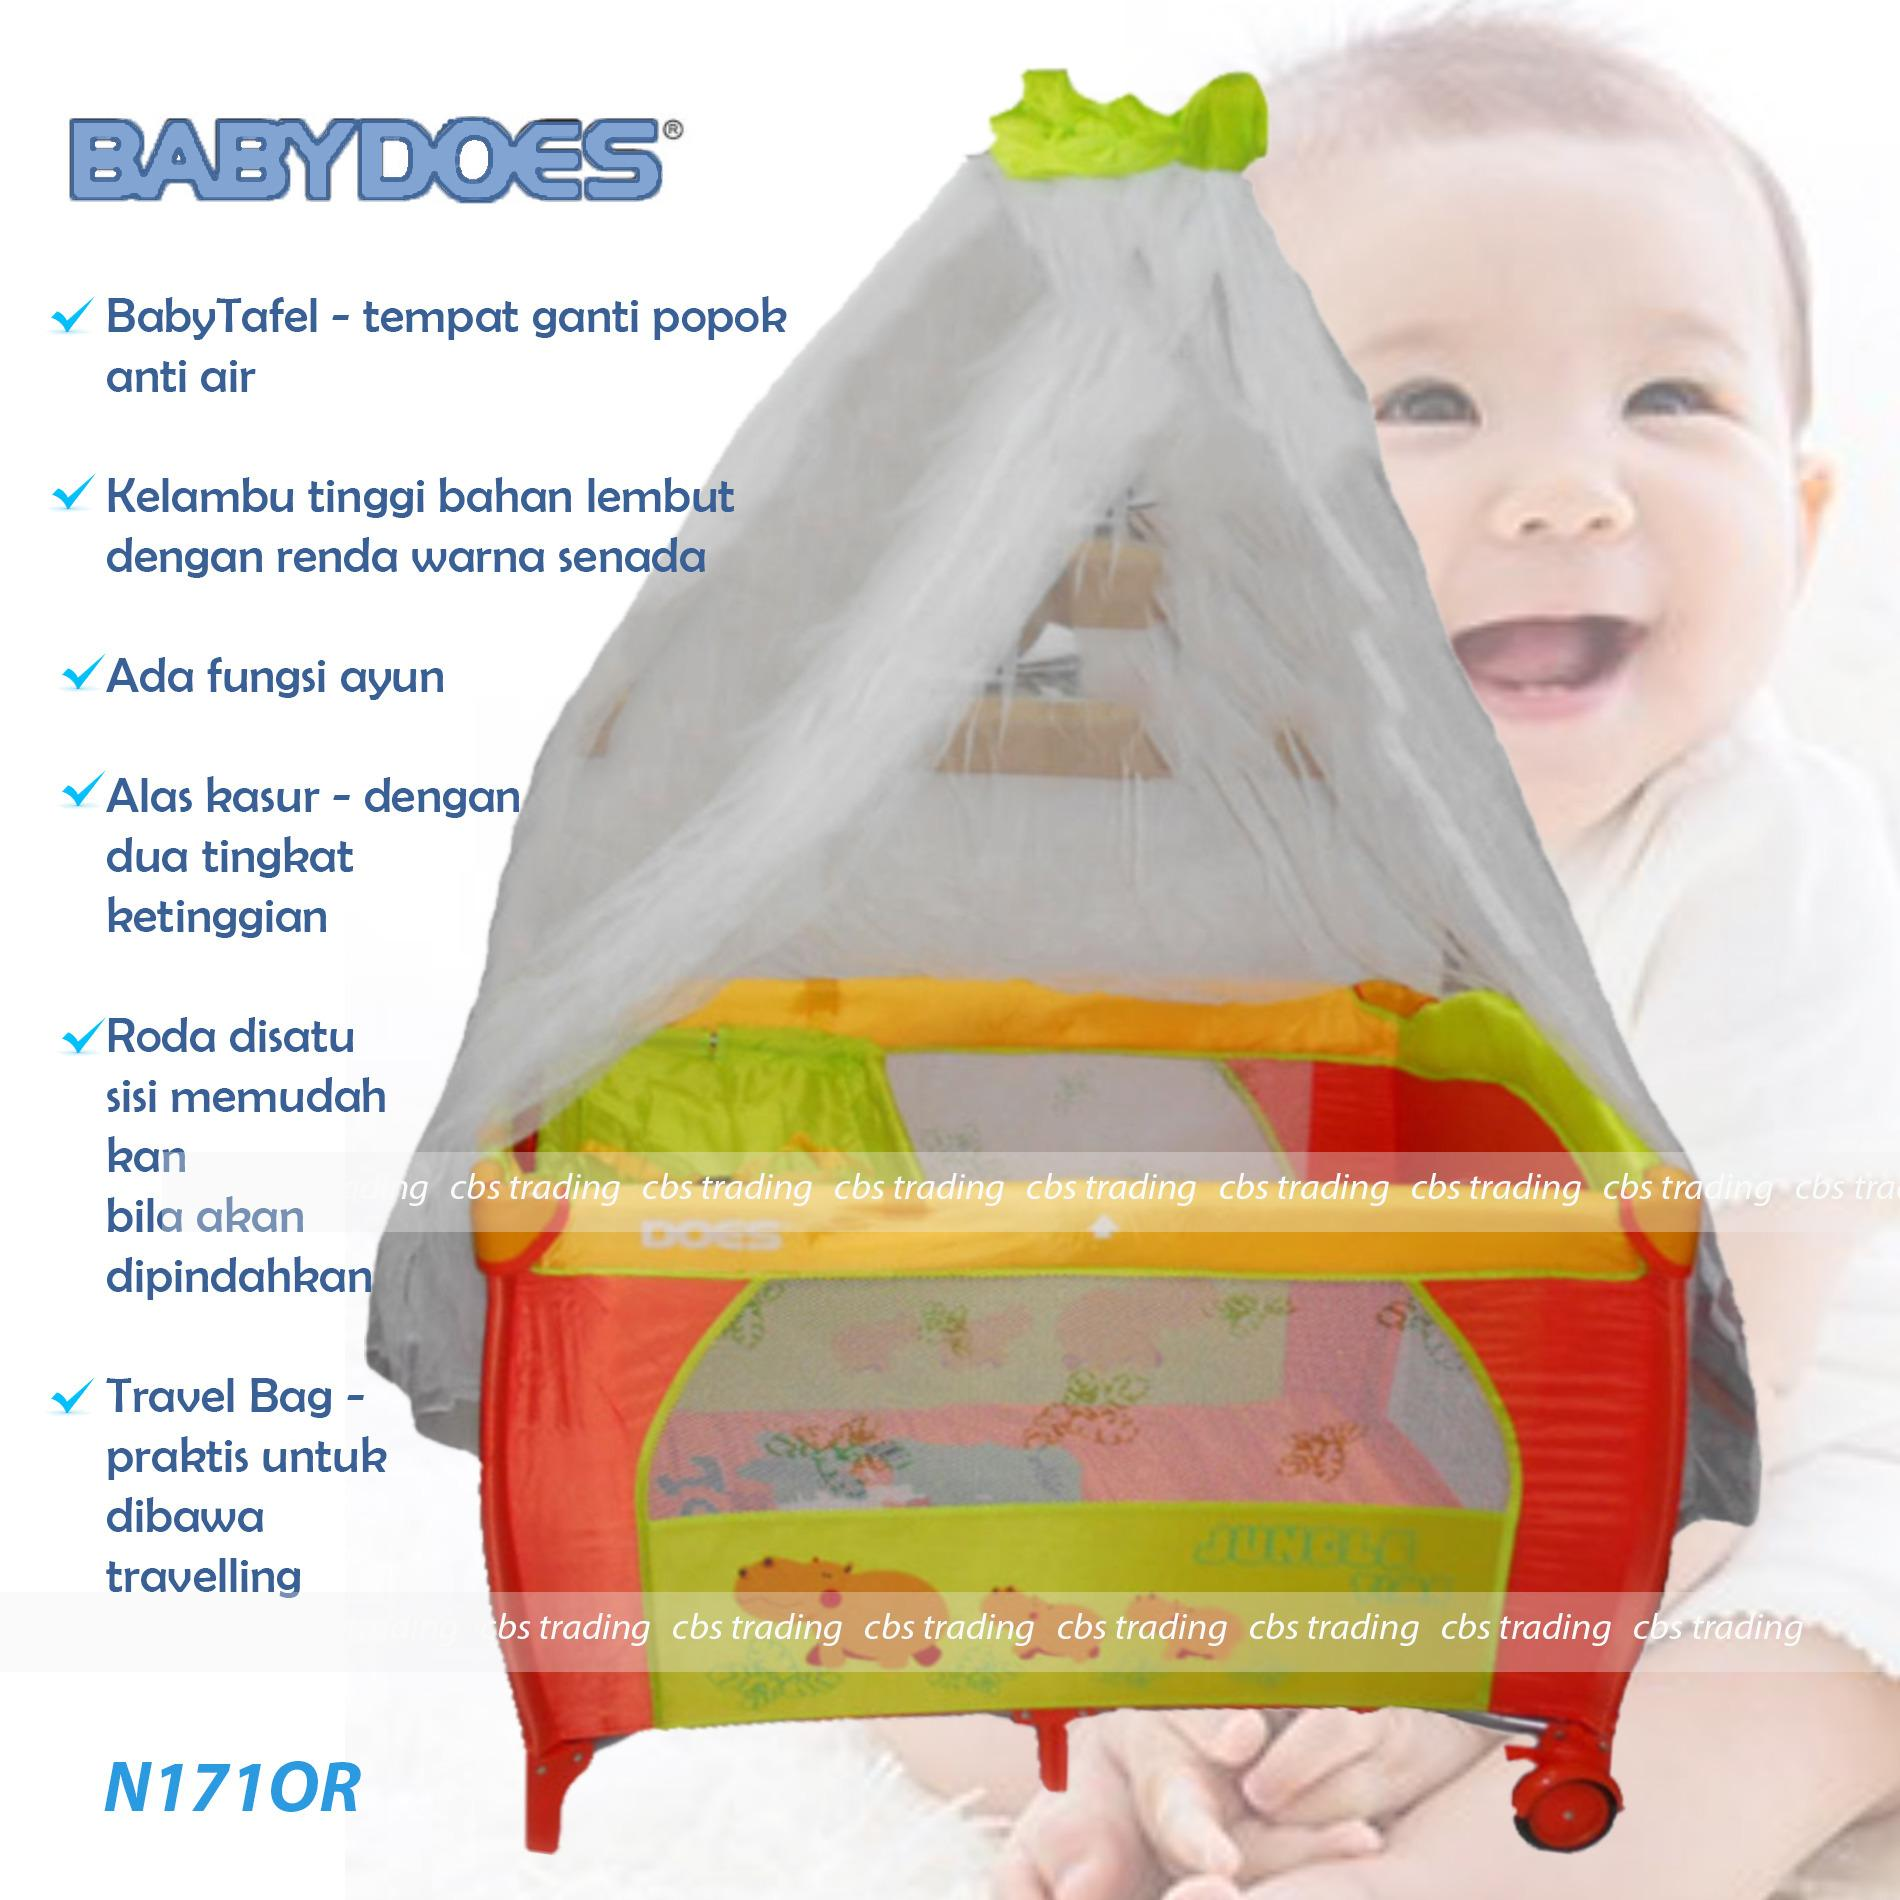 Harga Babydoes Baby Box N171 Box Bayi Does 171 Ranjang Bayi Orange Origin